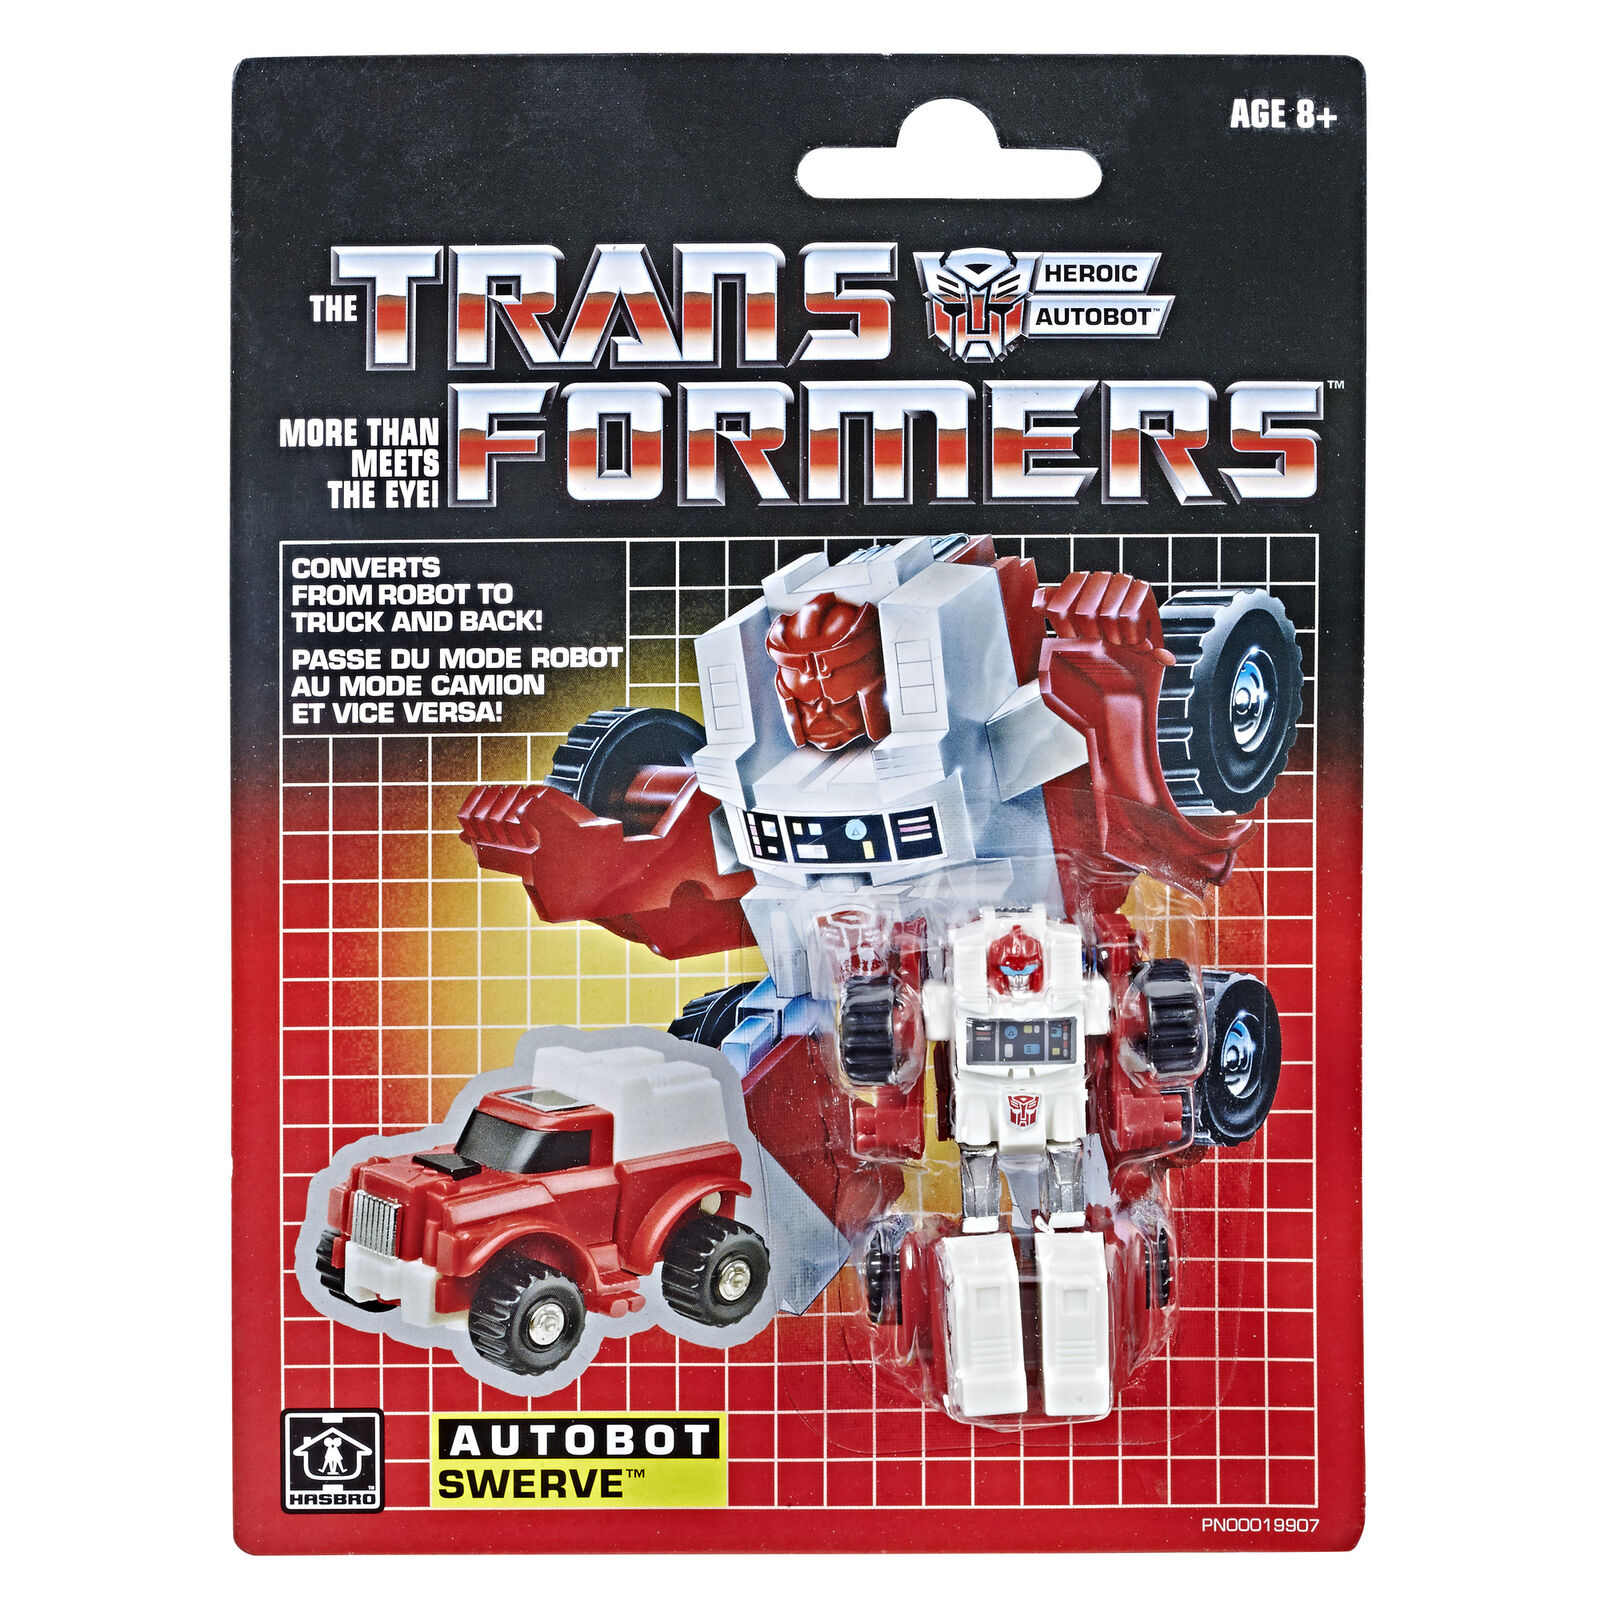 2018 Transformers Minibot Autobot SWERVE Walmart Exclusive Sealed NEW